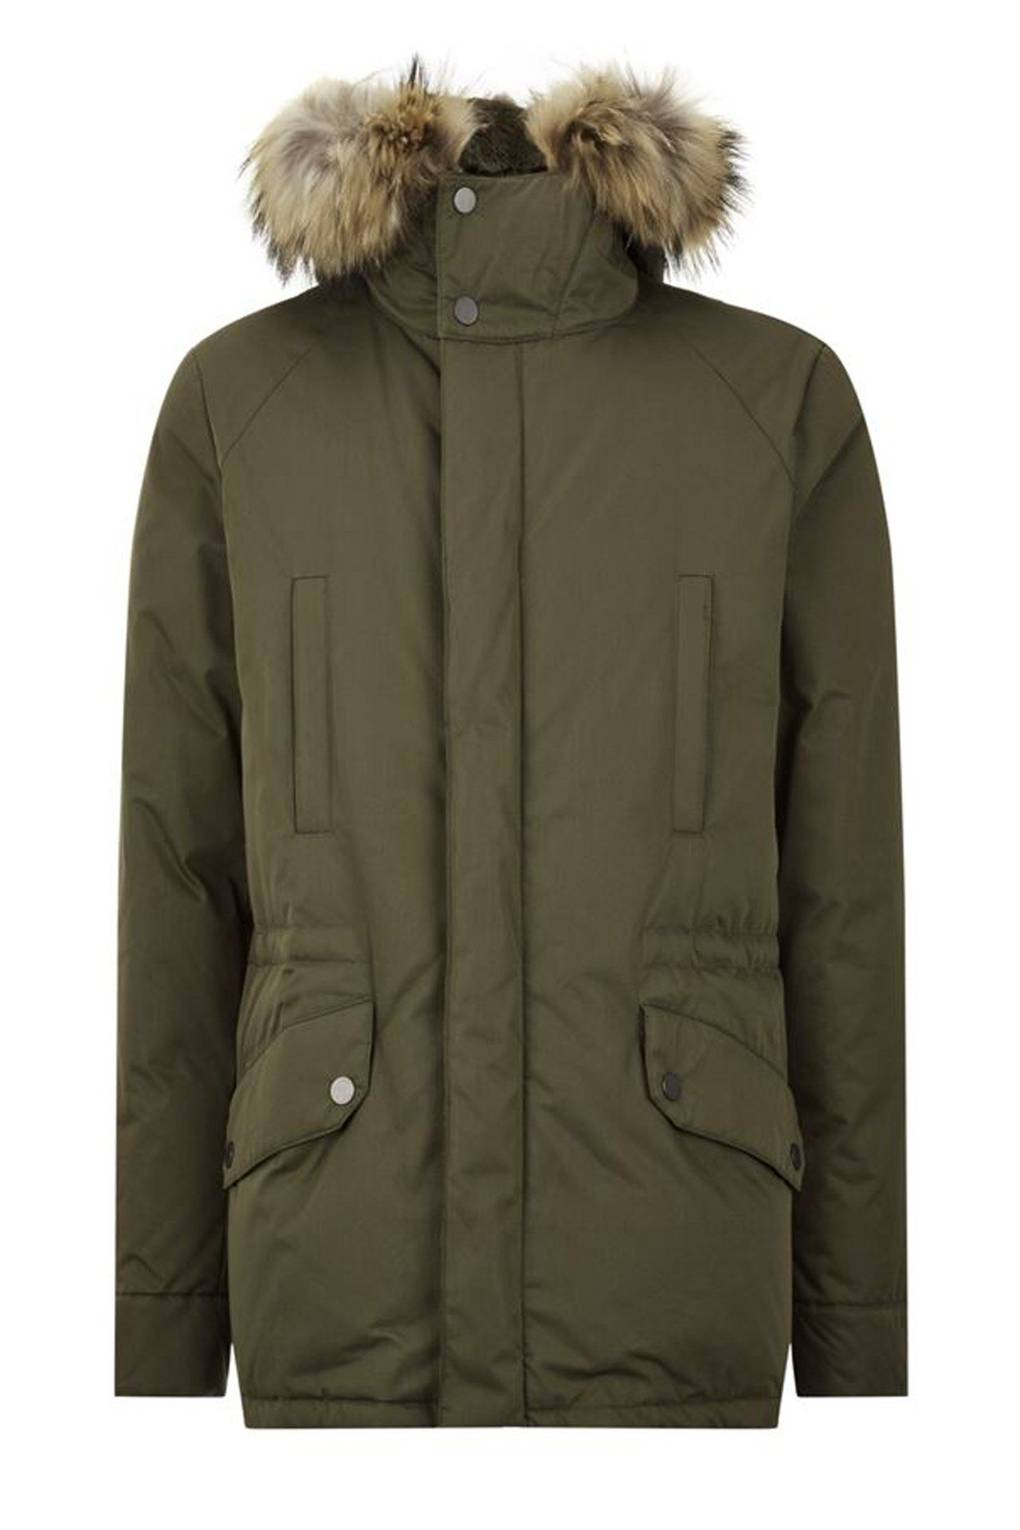 bbaf8a0e8c The 5 coats you need this winter   British GQ